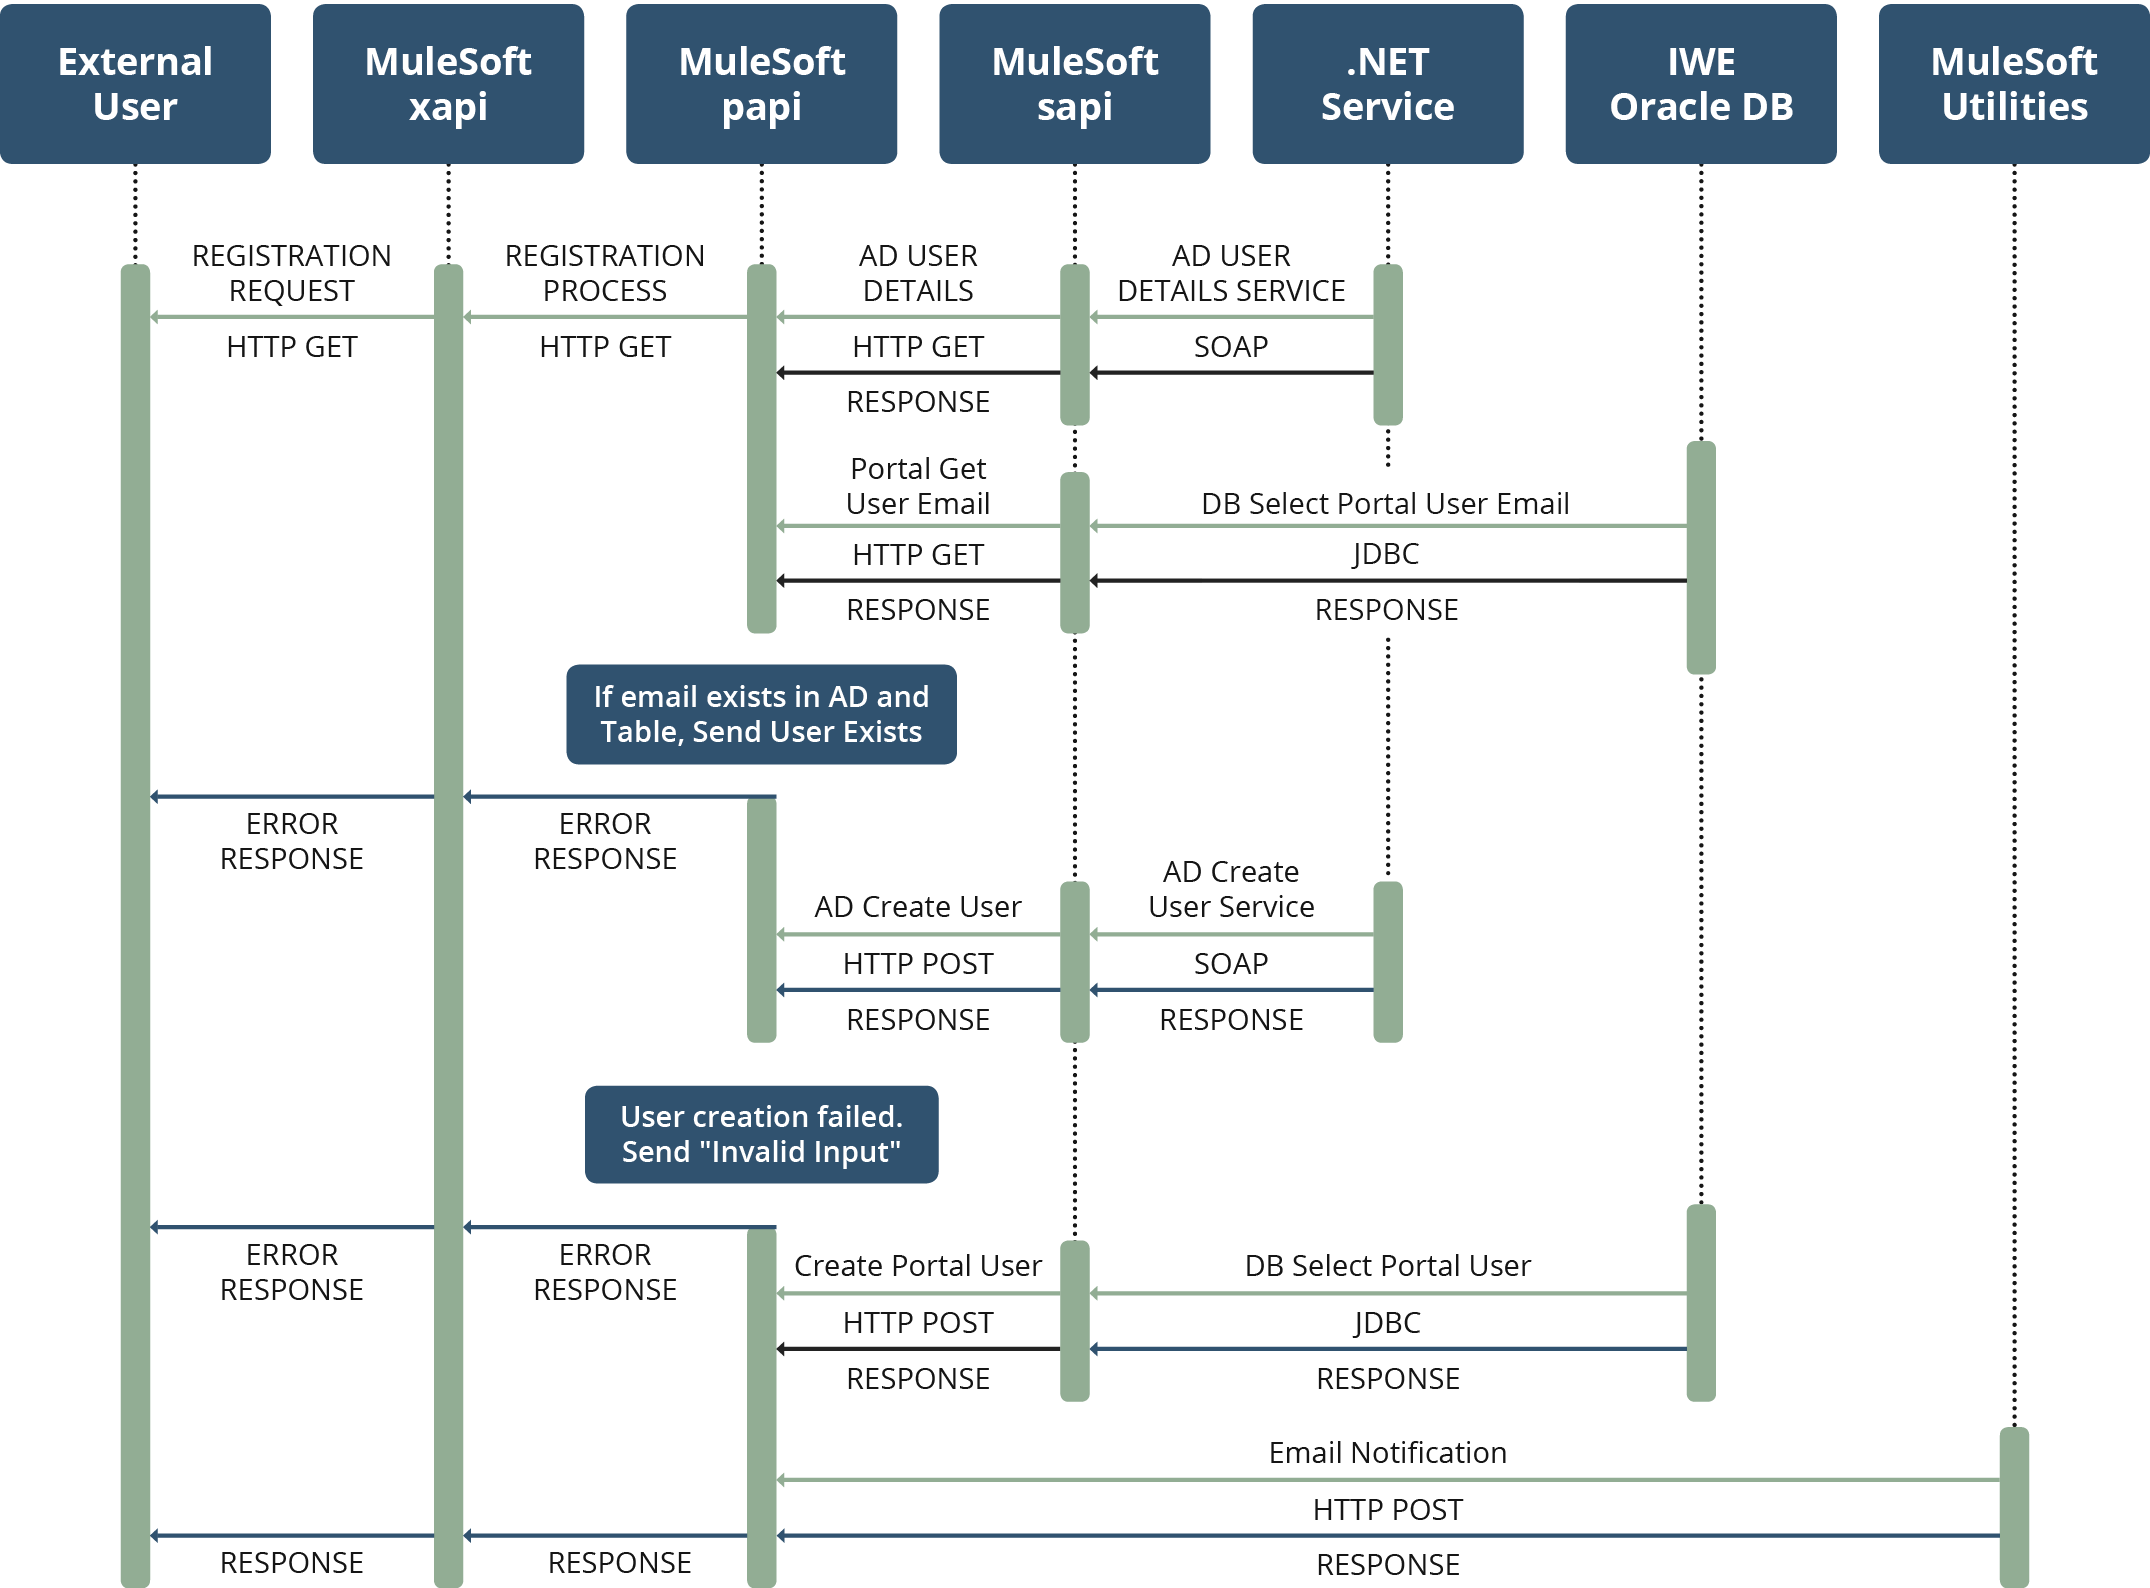 Building a Mobile Registration Application using MuleSoft